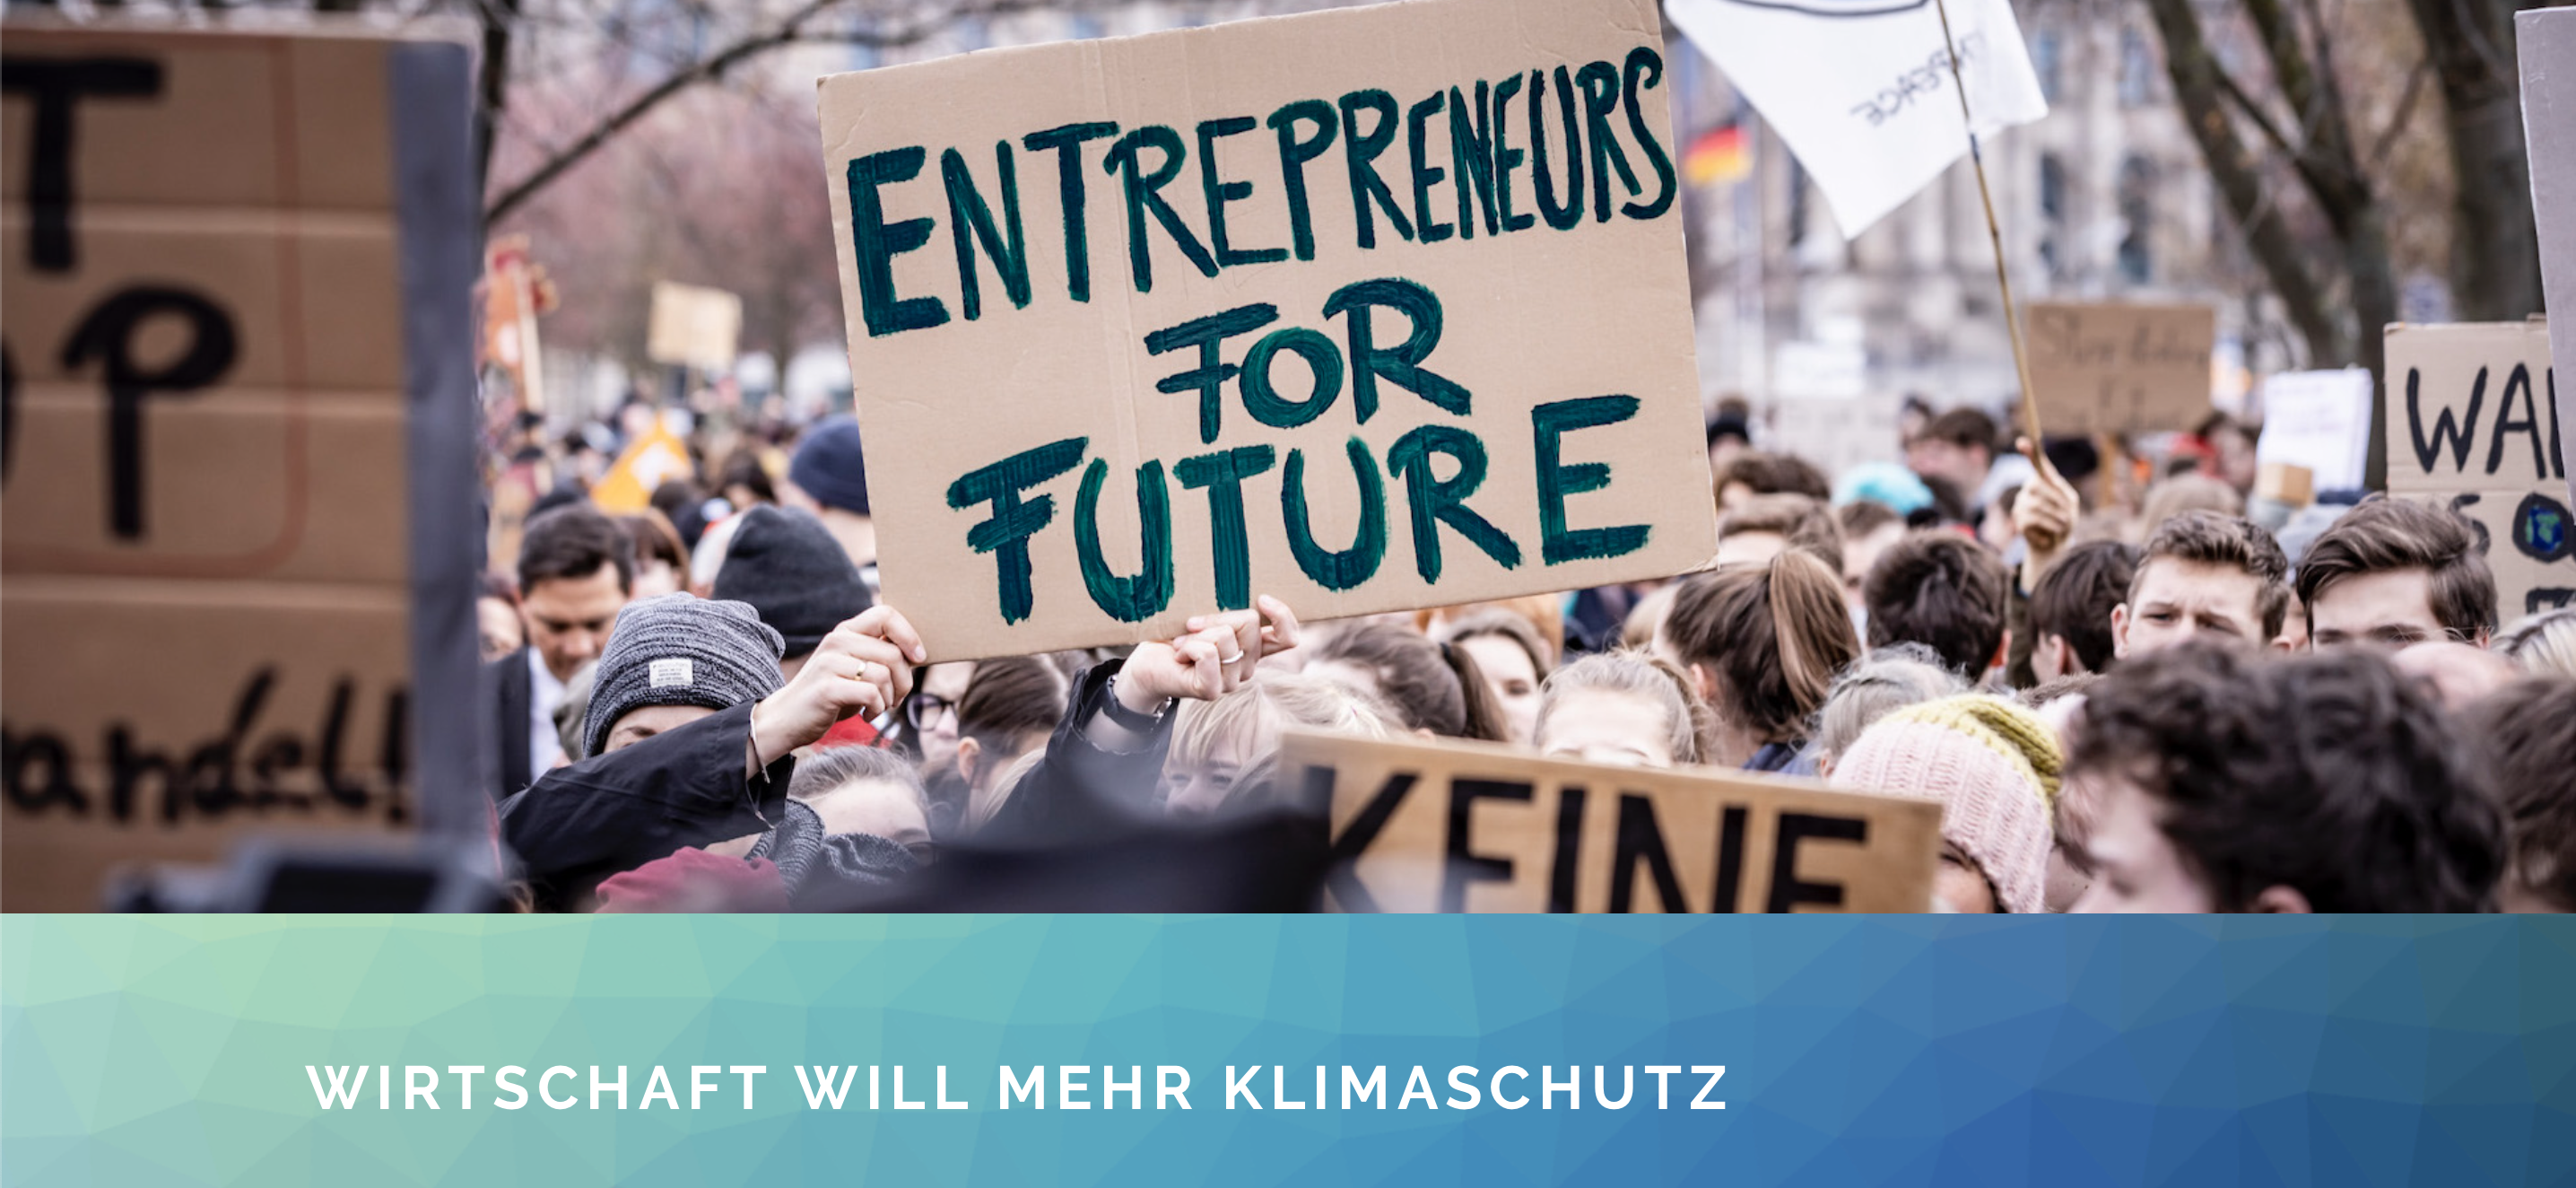 Biotec Klute bei Entrepreneurs For Future